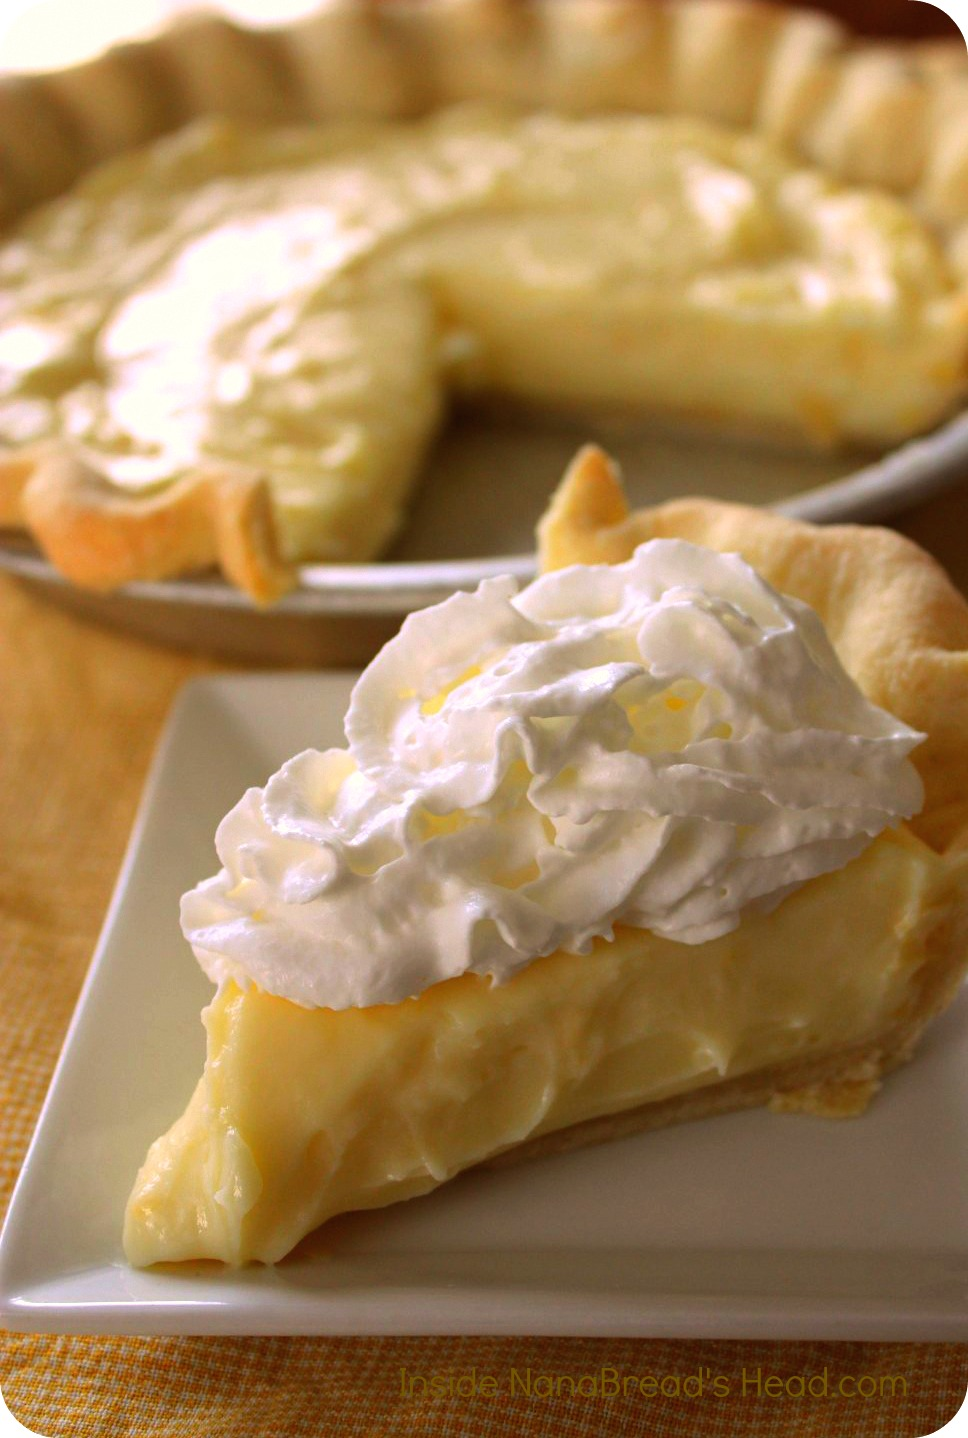 So Simple: Lemon Sour Cream Pie | Inside NanaBread's Head